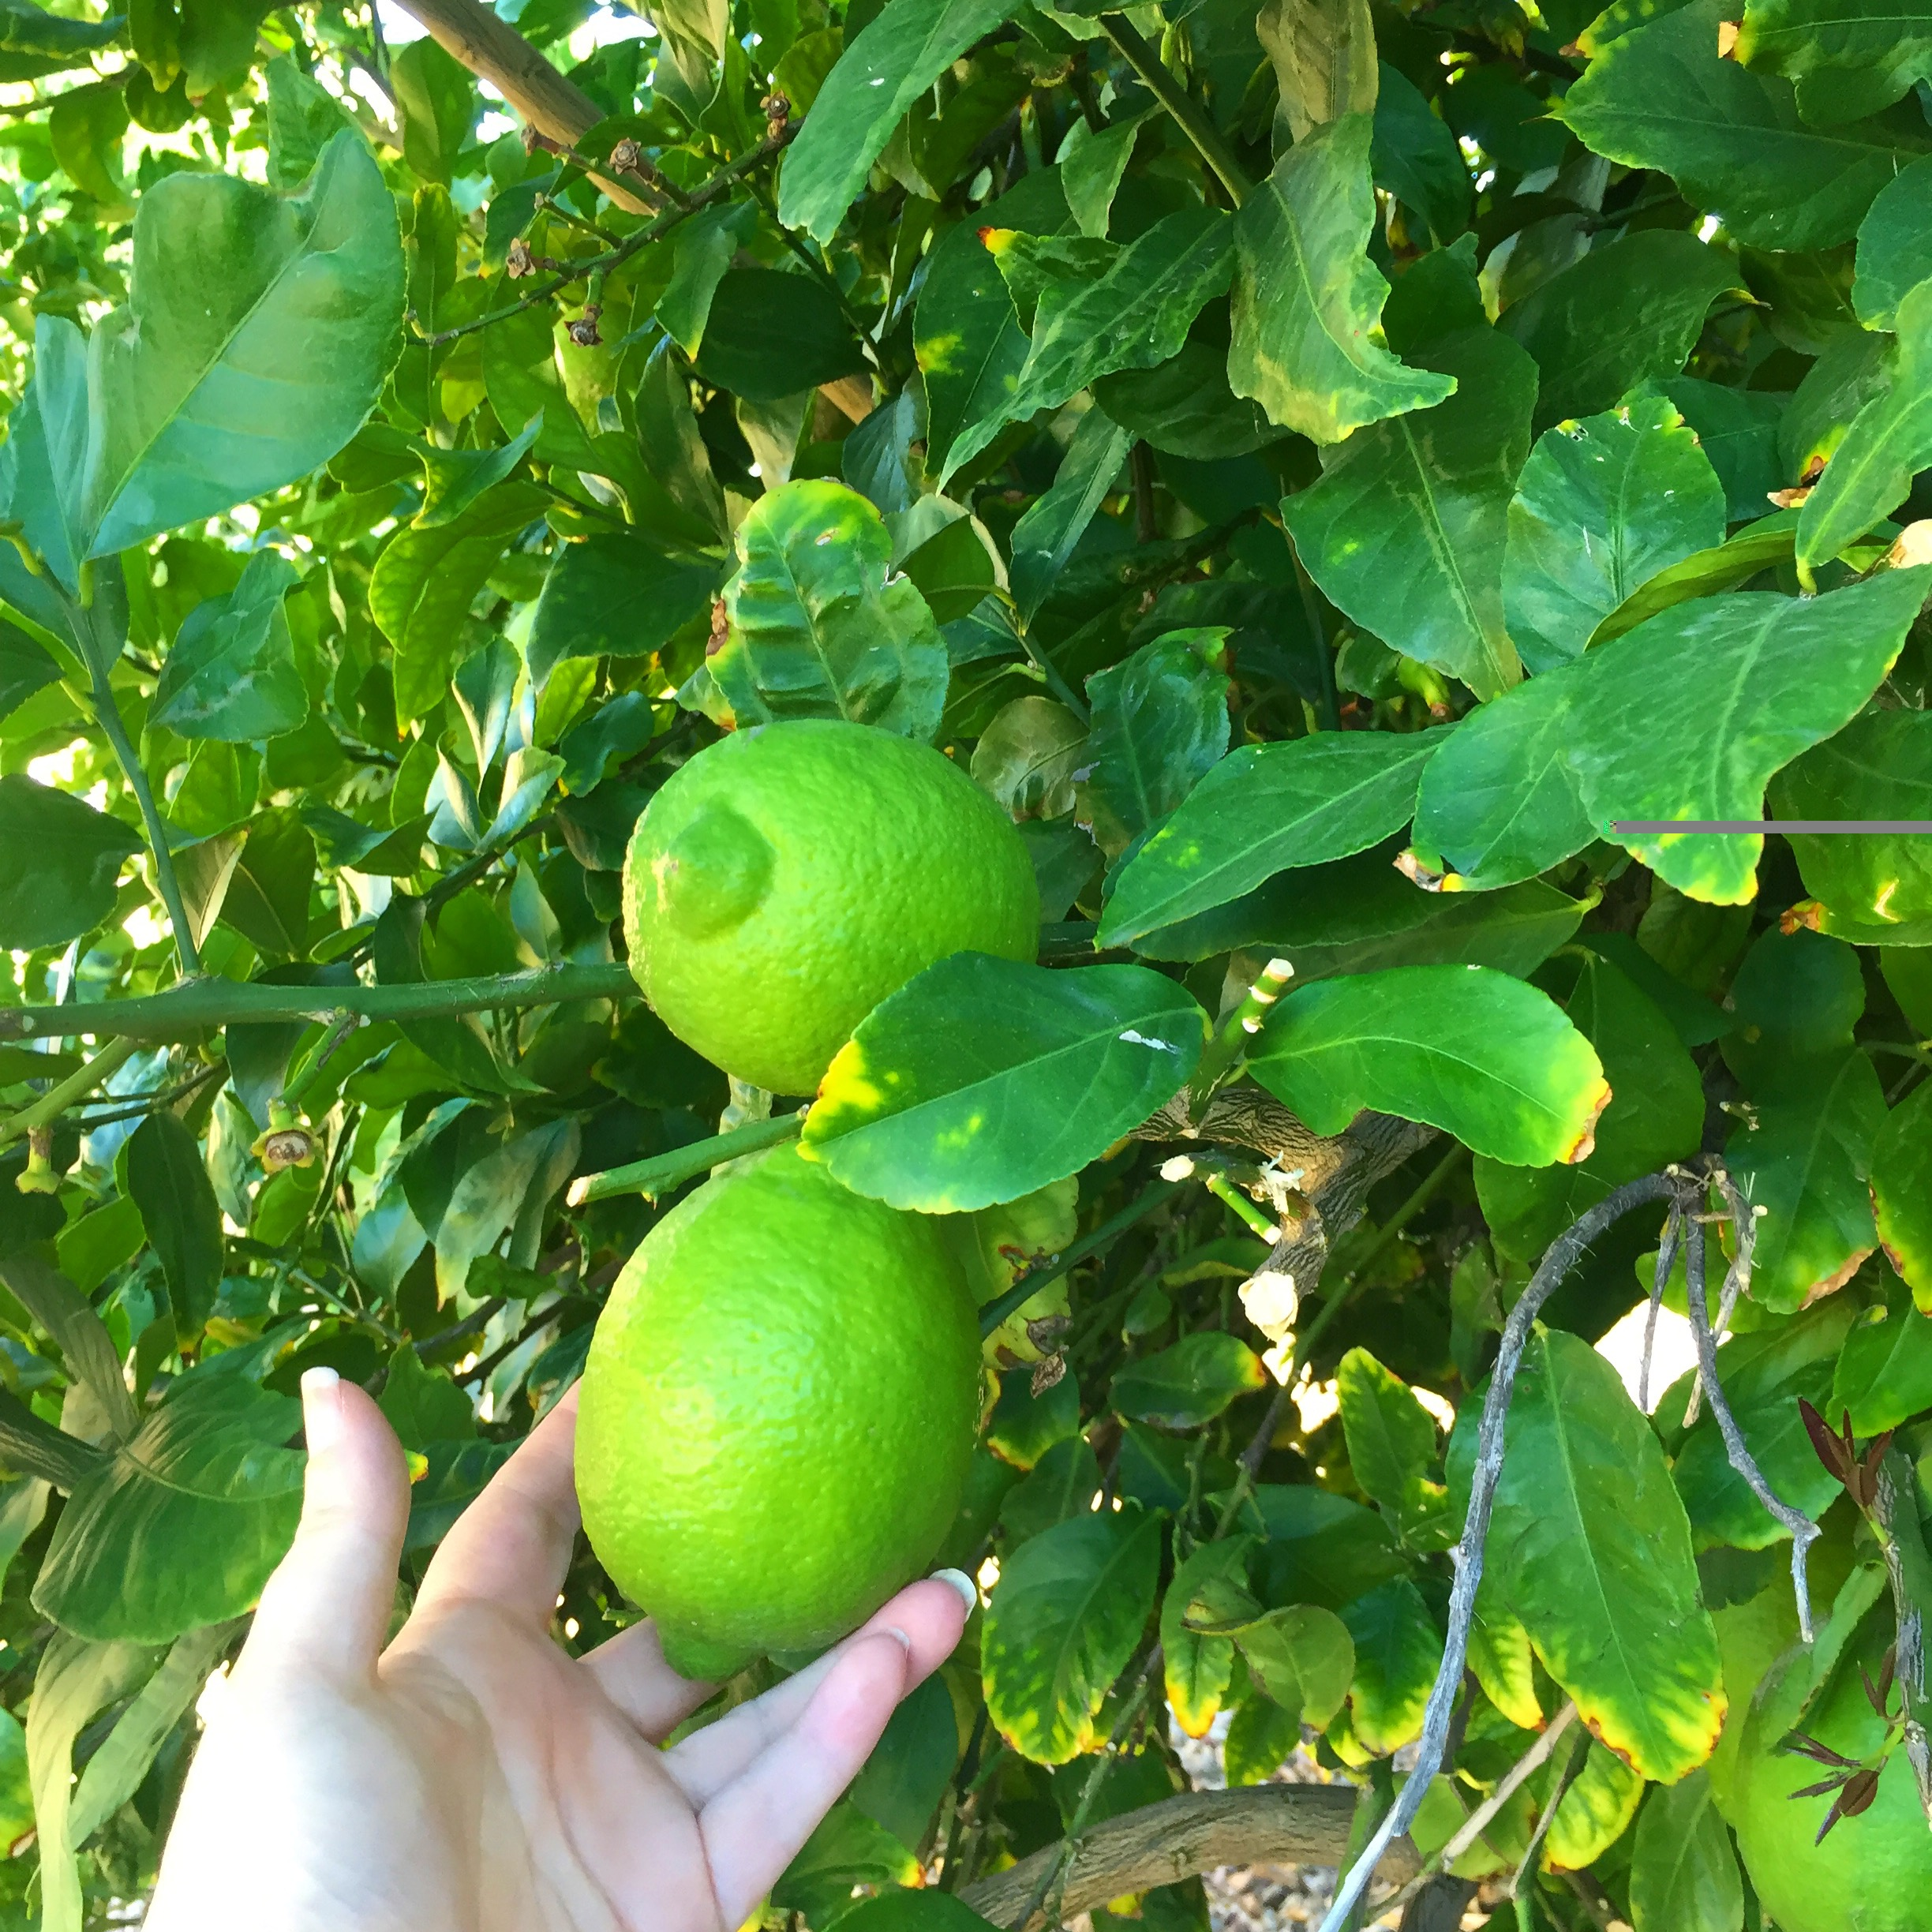 The lime tree in my backyard